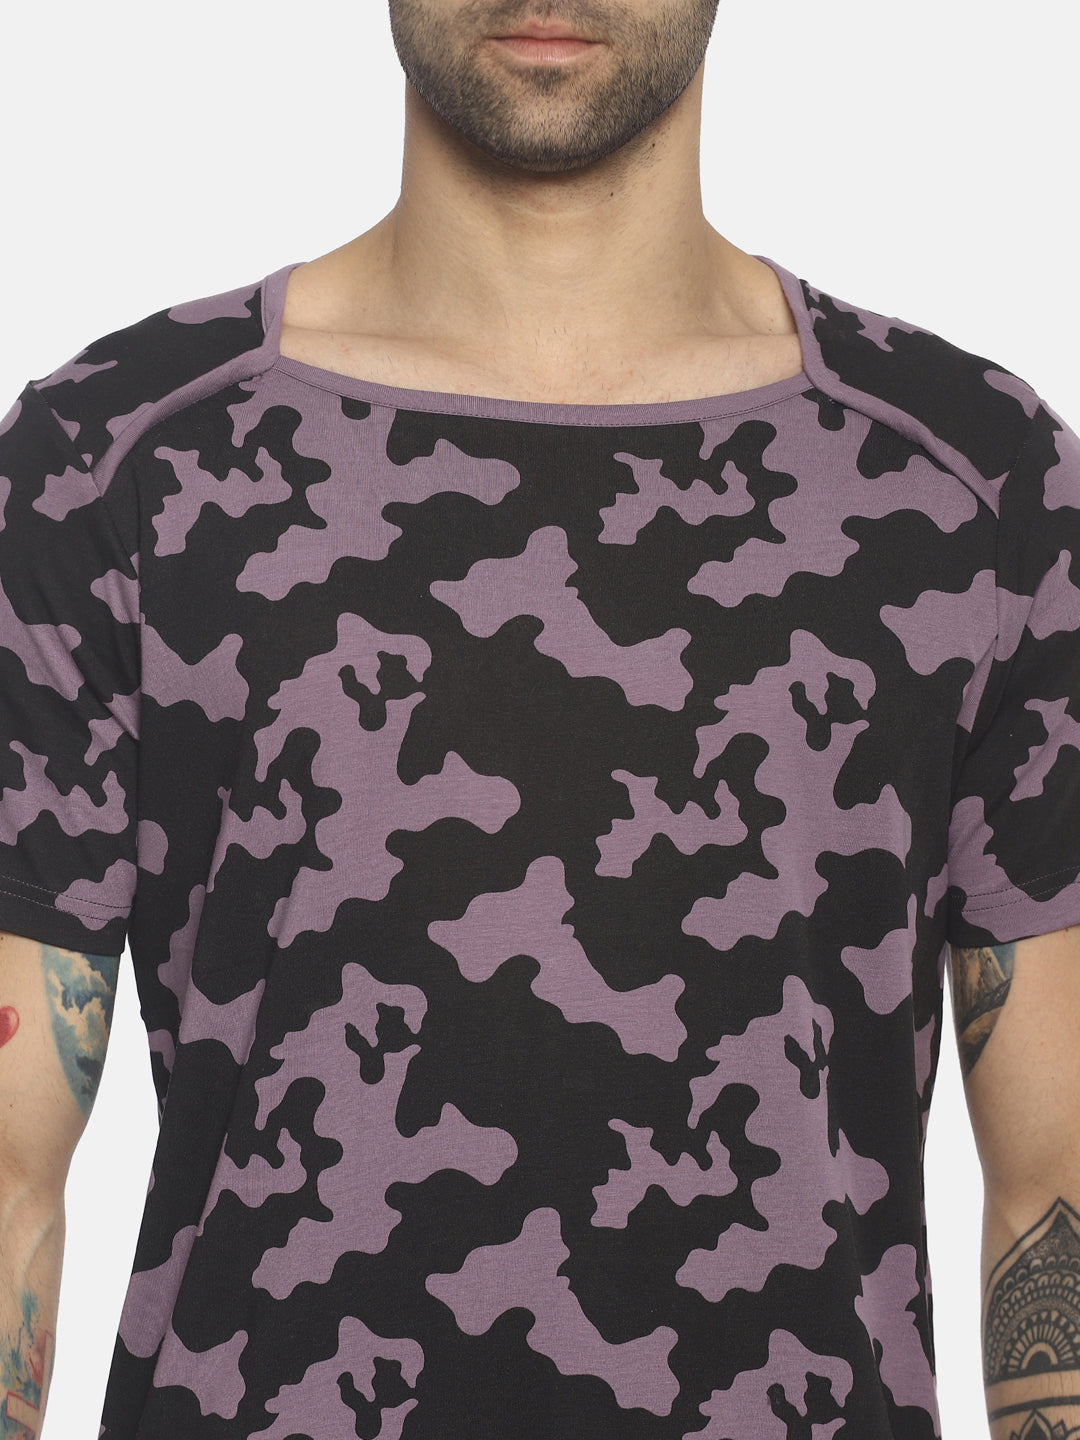 All Over Printed ,Short Sleeve ,Round Neck T shirt